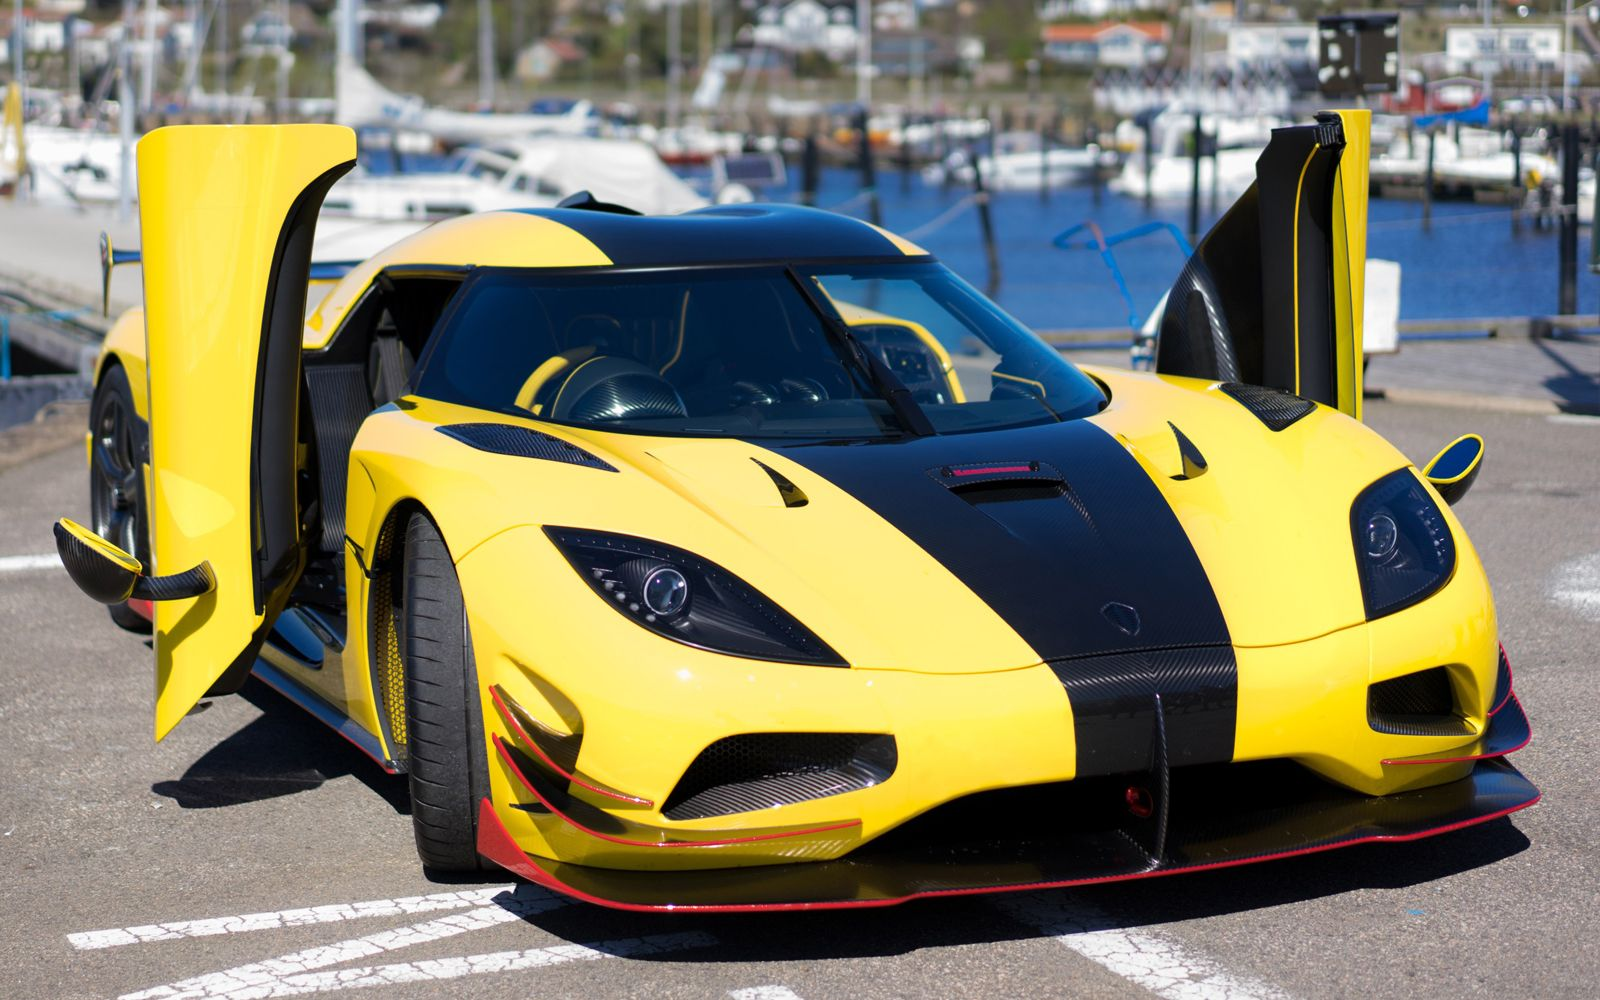 Top Speed: See The 20 Fastest Cars In The World